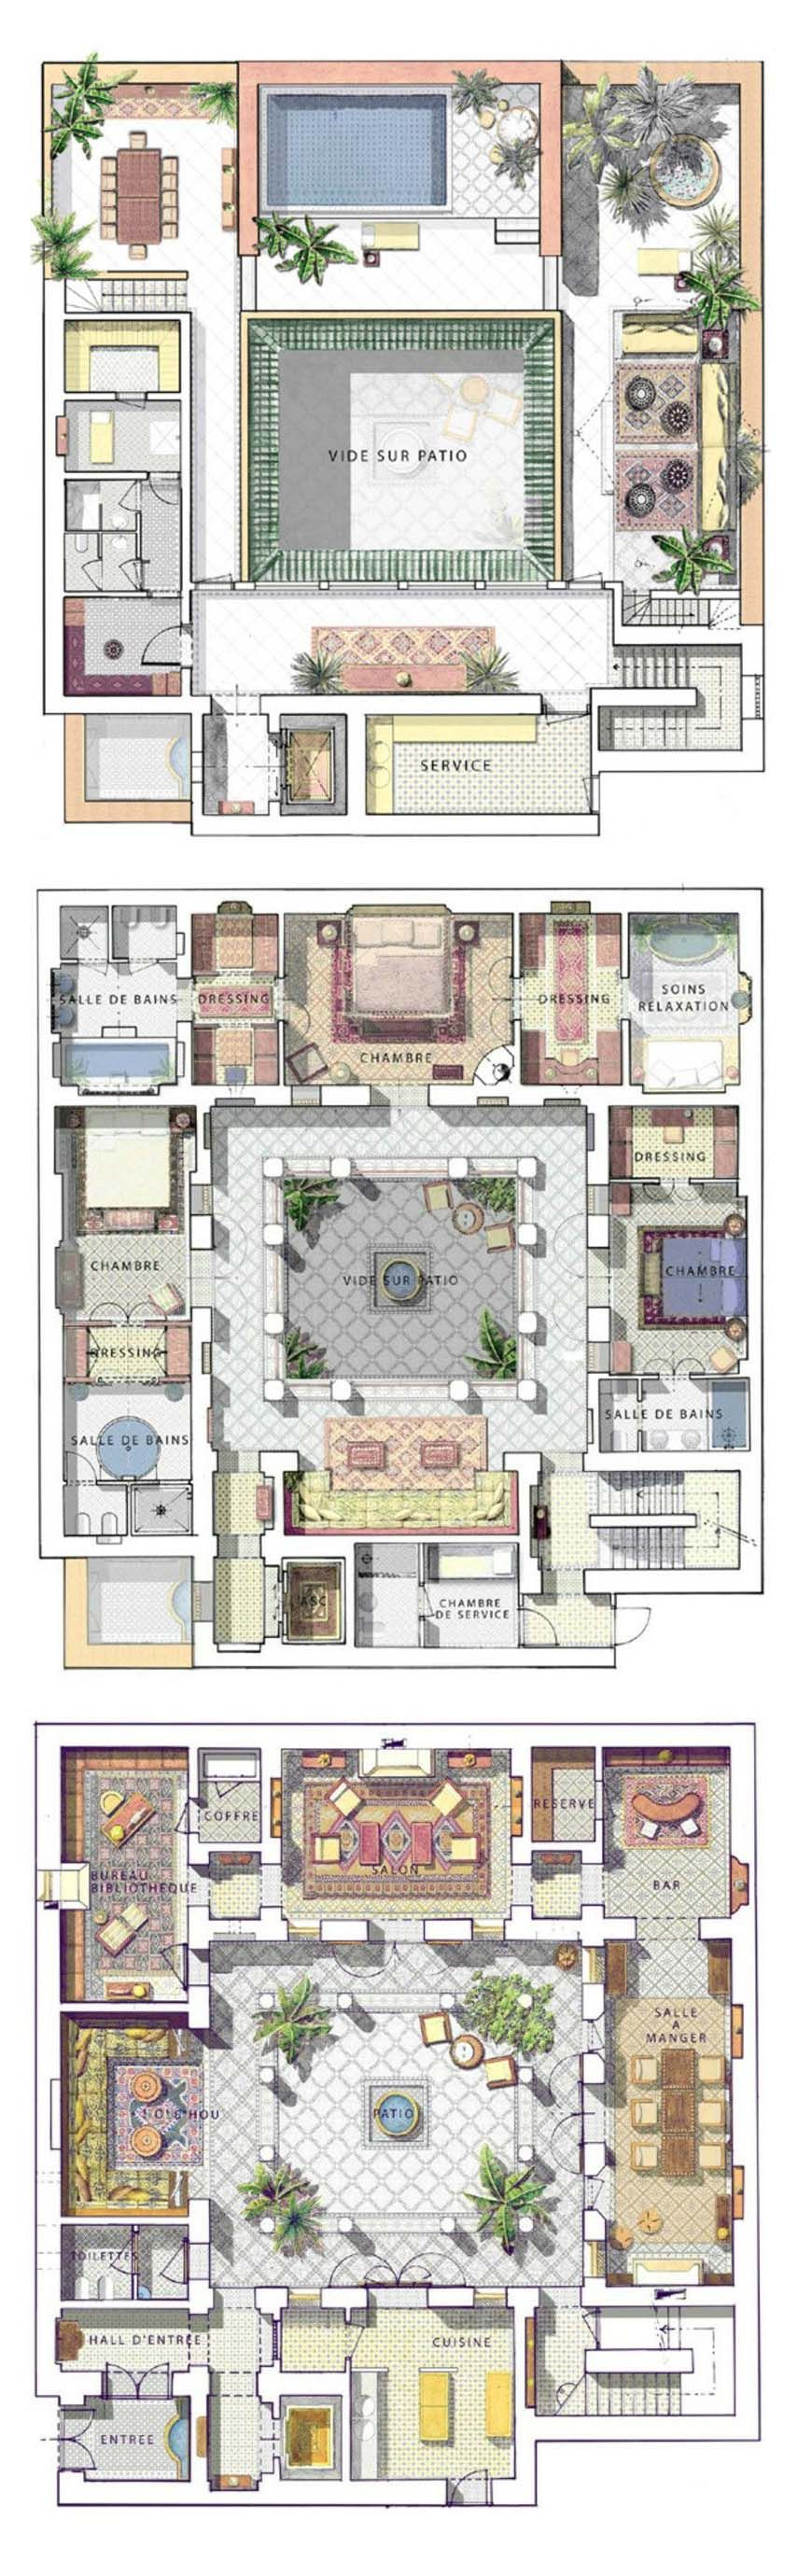 Pin By James Sundance On Architecture Riad Floor Plan Courtyard House Plans House Plans